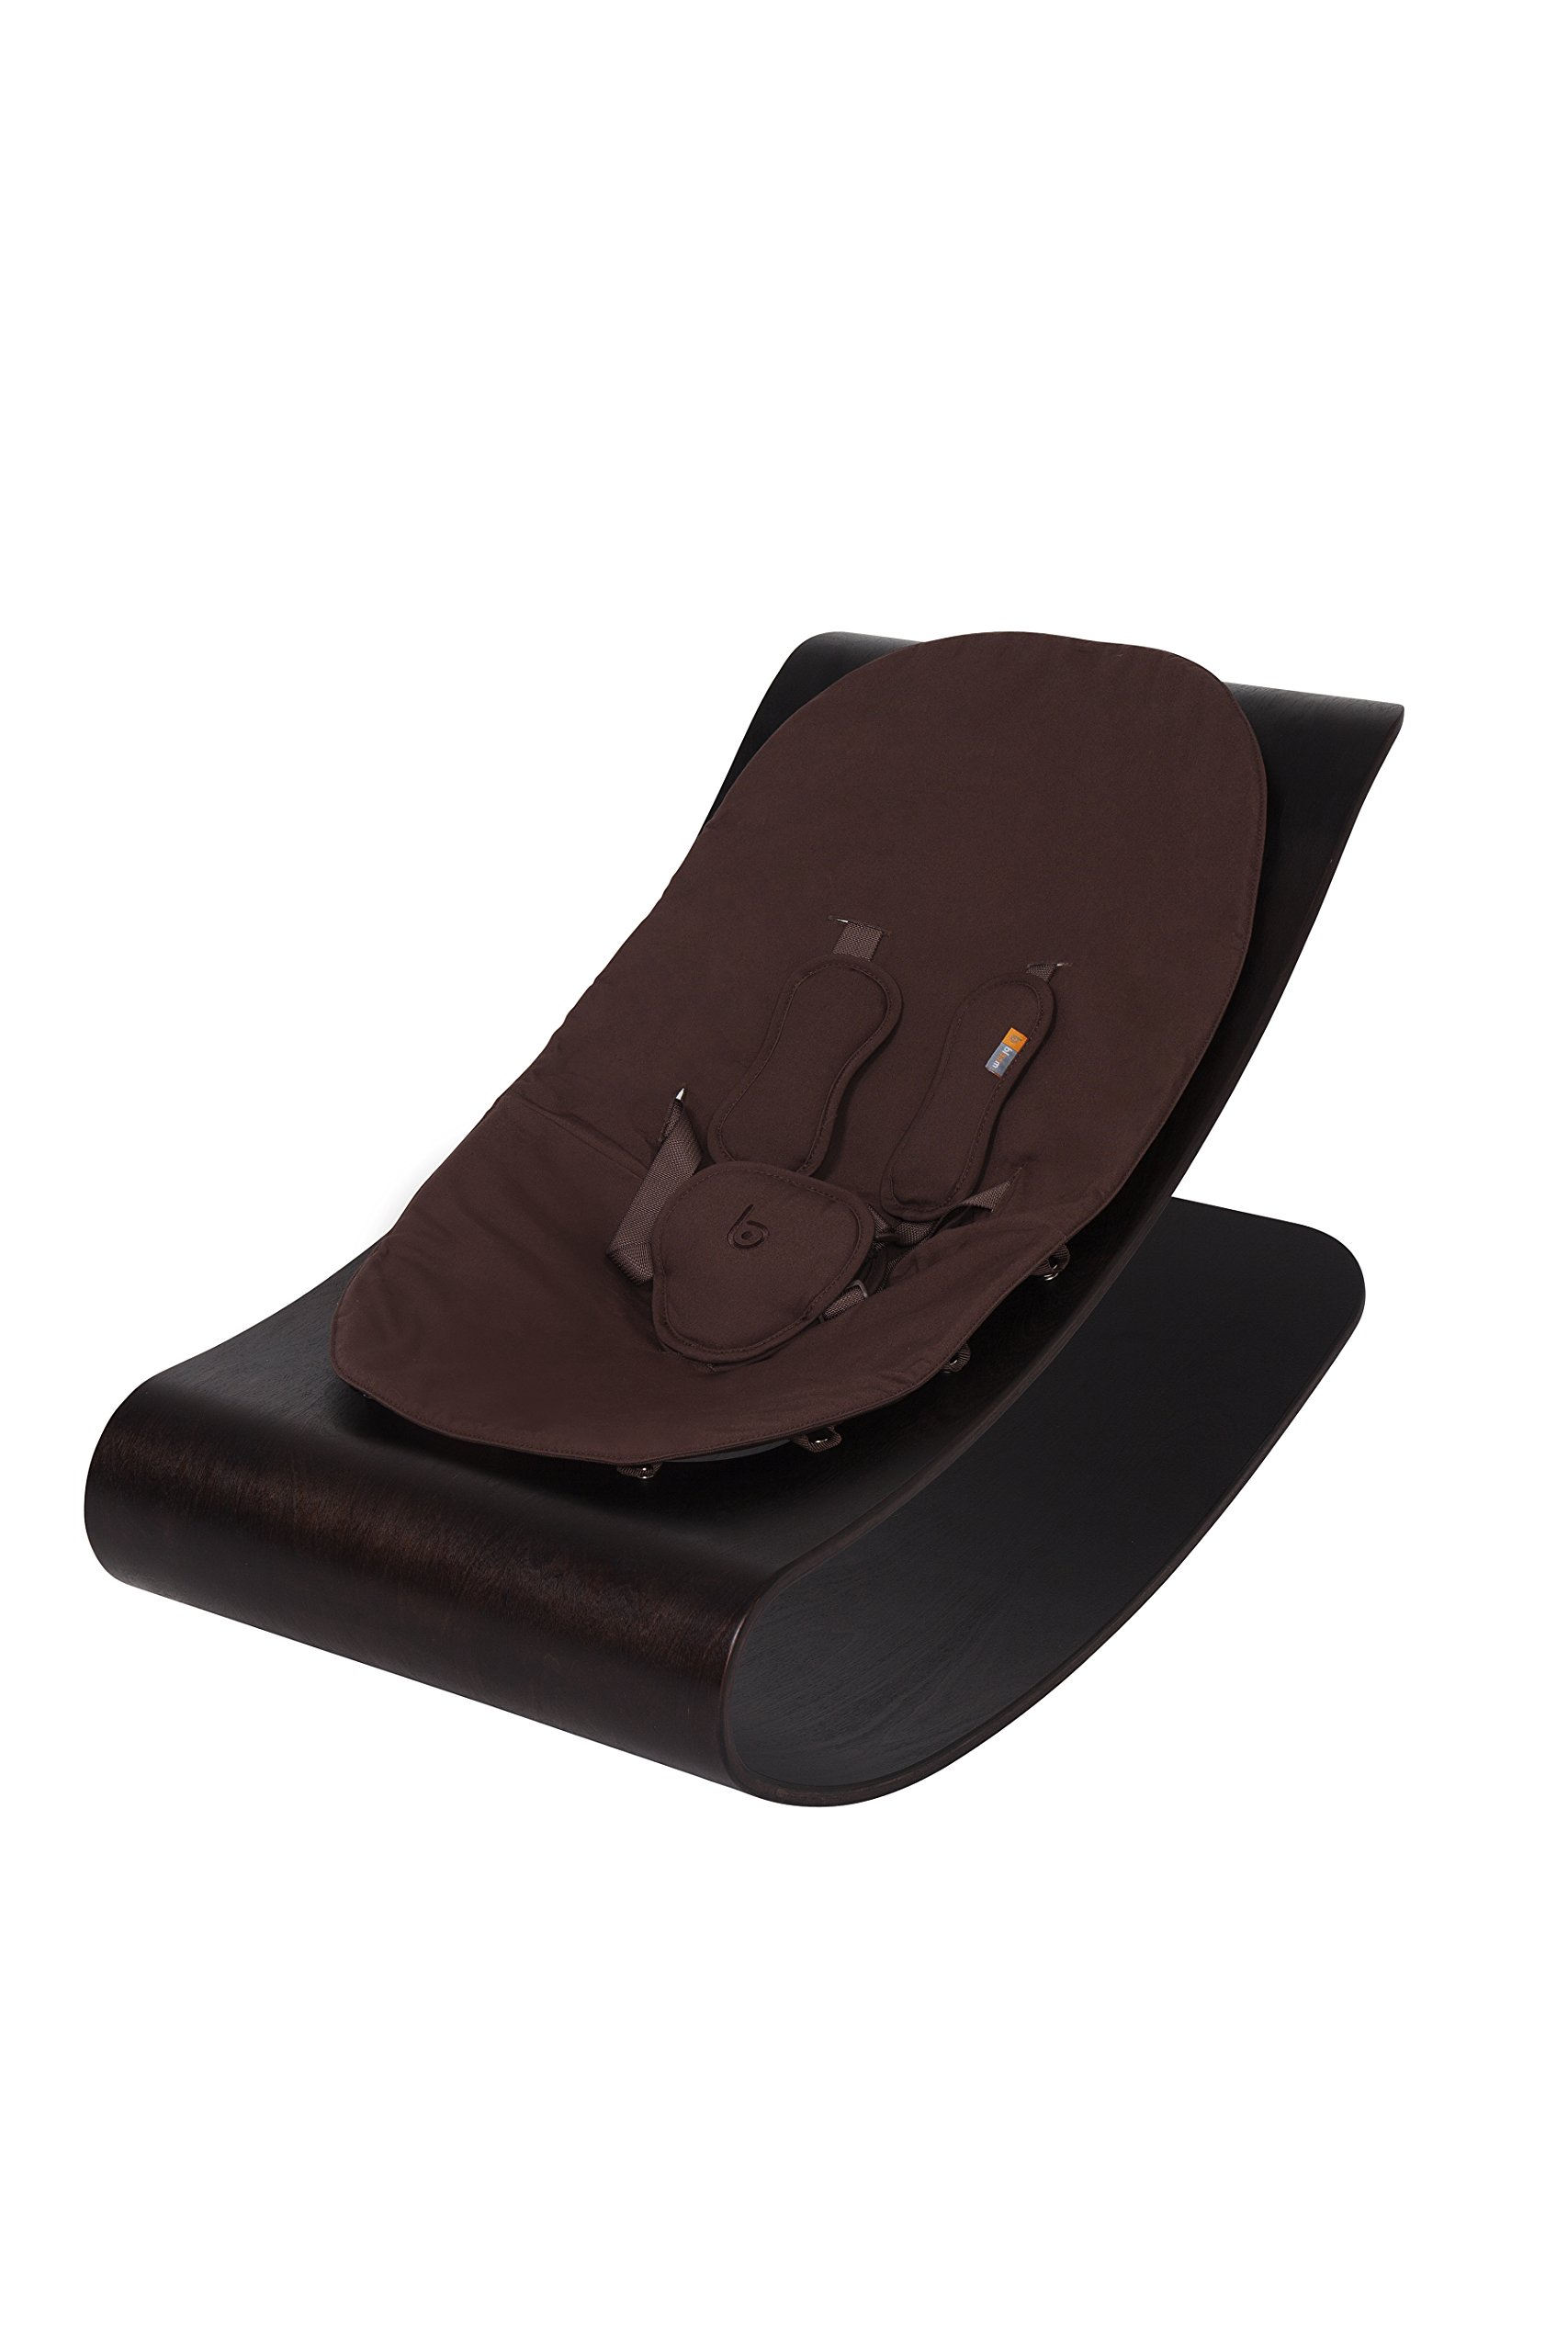 bloom Coco Stylewood Modern Baby Lounger / Rocker / Bouncer - Cappuccino Frame w/ Organic Cotton Baby-Facing Seat Pad (Henna Brown)